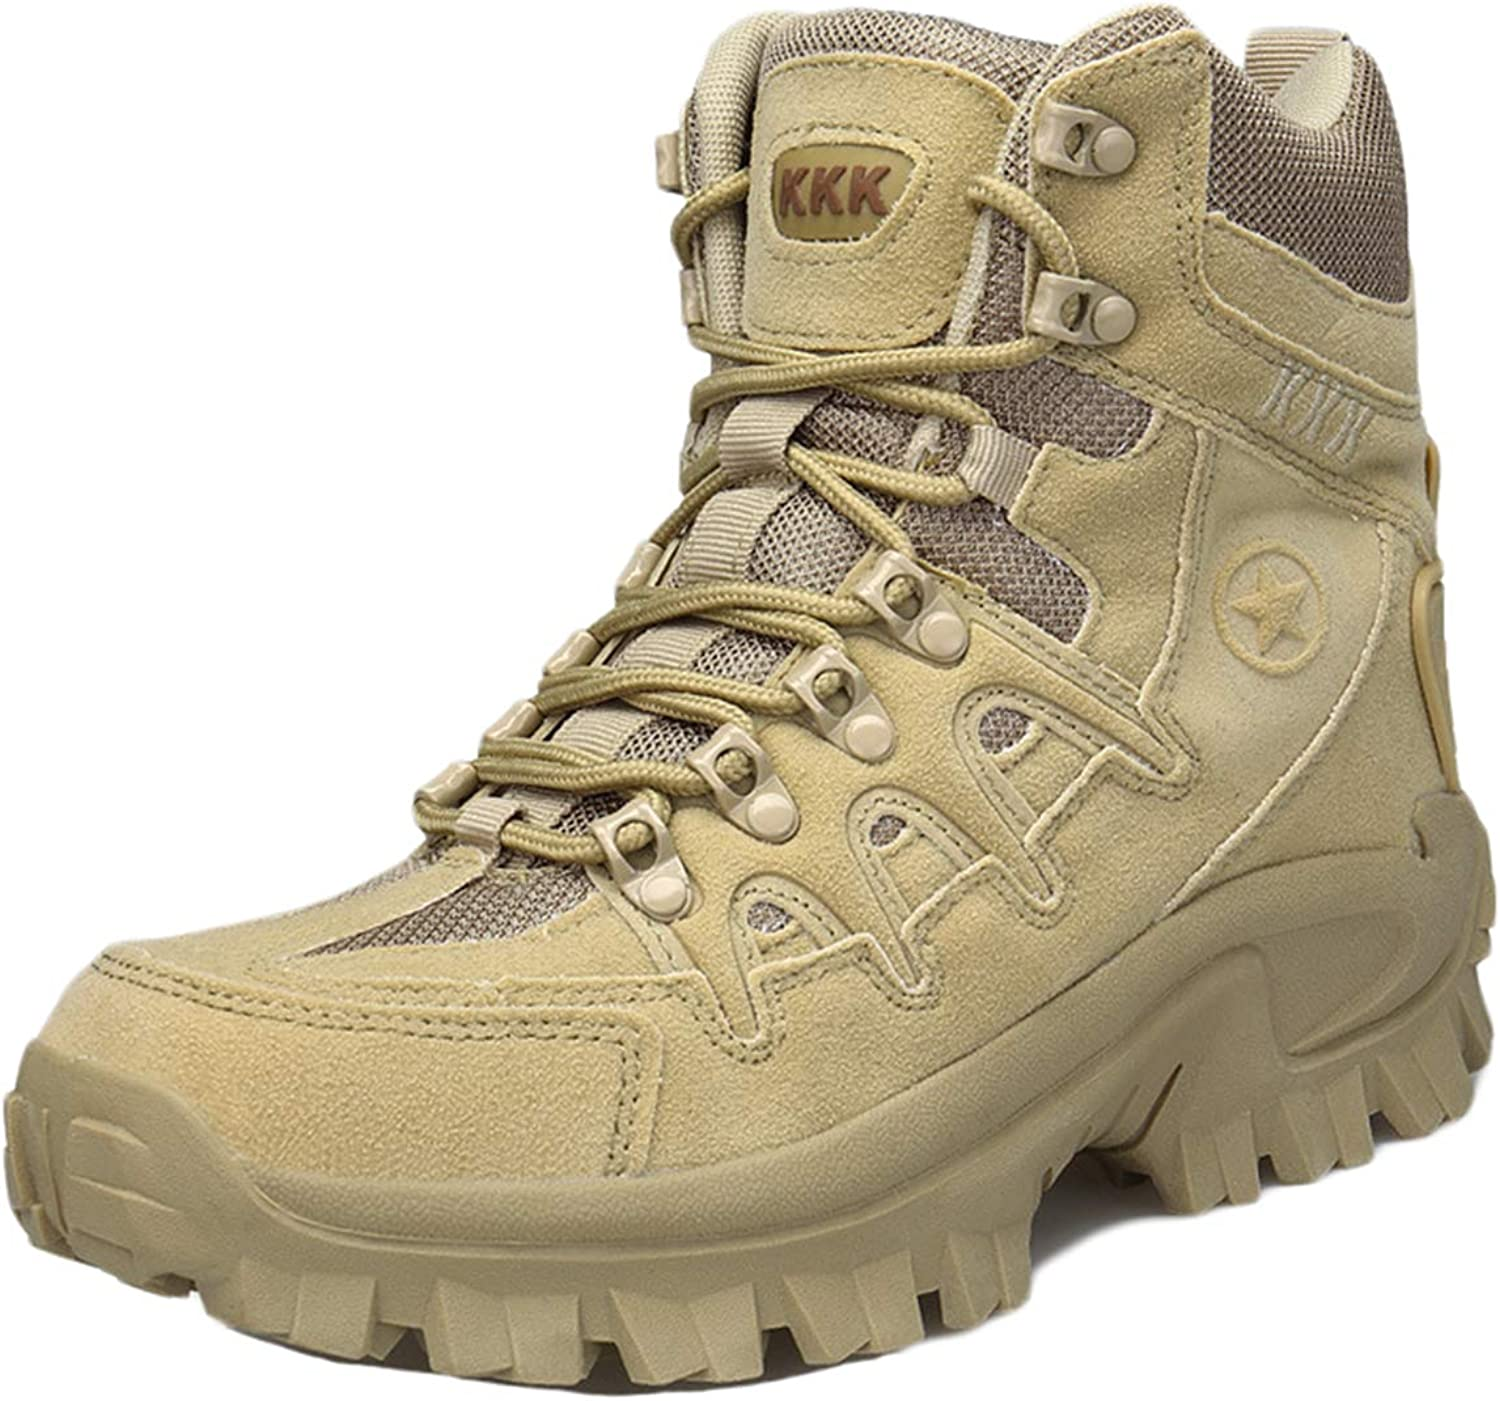 MERRYHE Men Desert Combat Boot Military Boots Tactical Boot Outdoor Sports Camping Hiking shoes High-Top Men's shoes